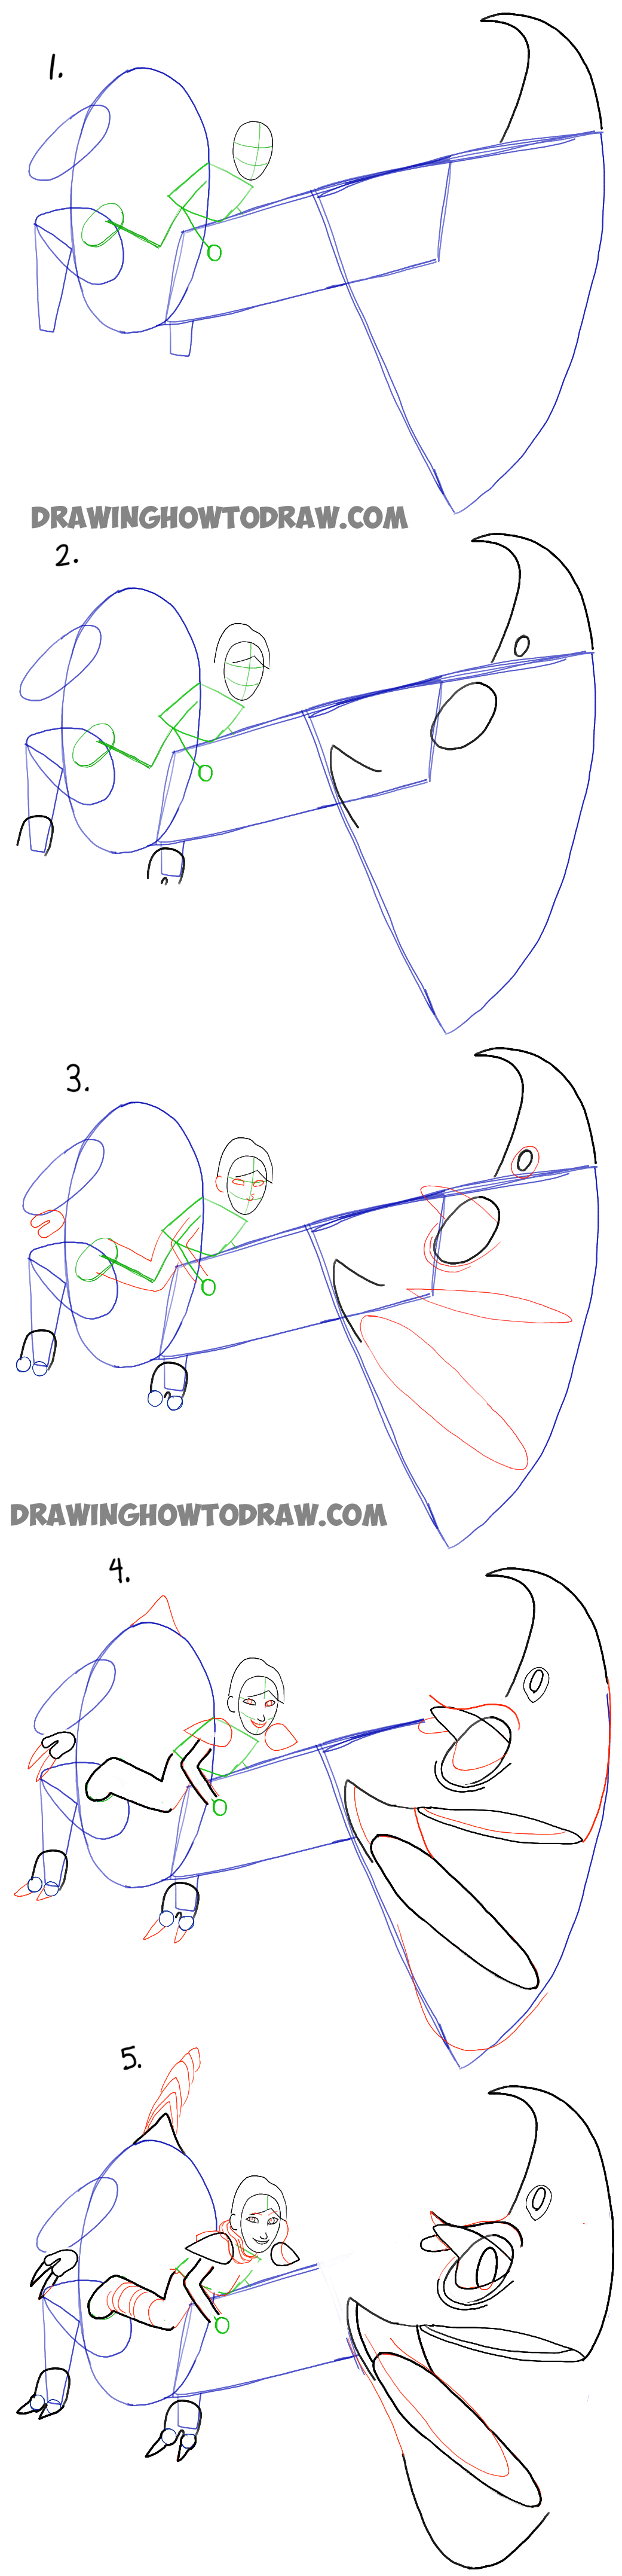 Here are the Step by Step Instructions for Drawing Windshear and Heather